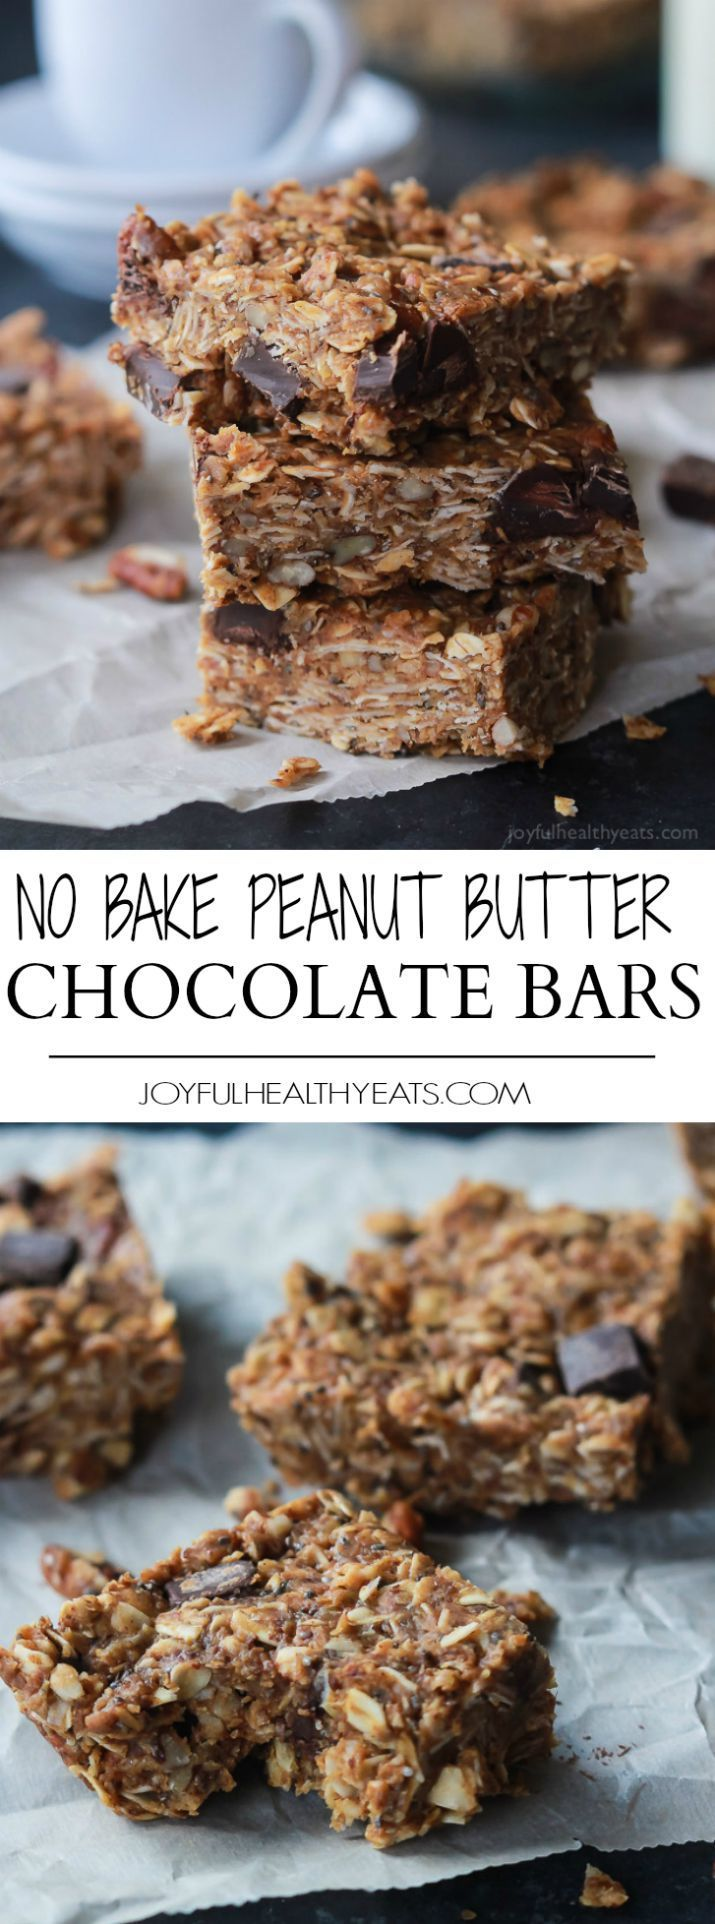 2118 best Peanut Butter Perfection images on Pinterest | Chocolate chips, Dessert recipes and Drink